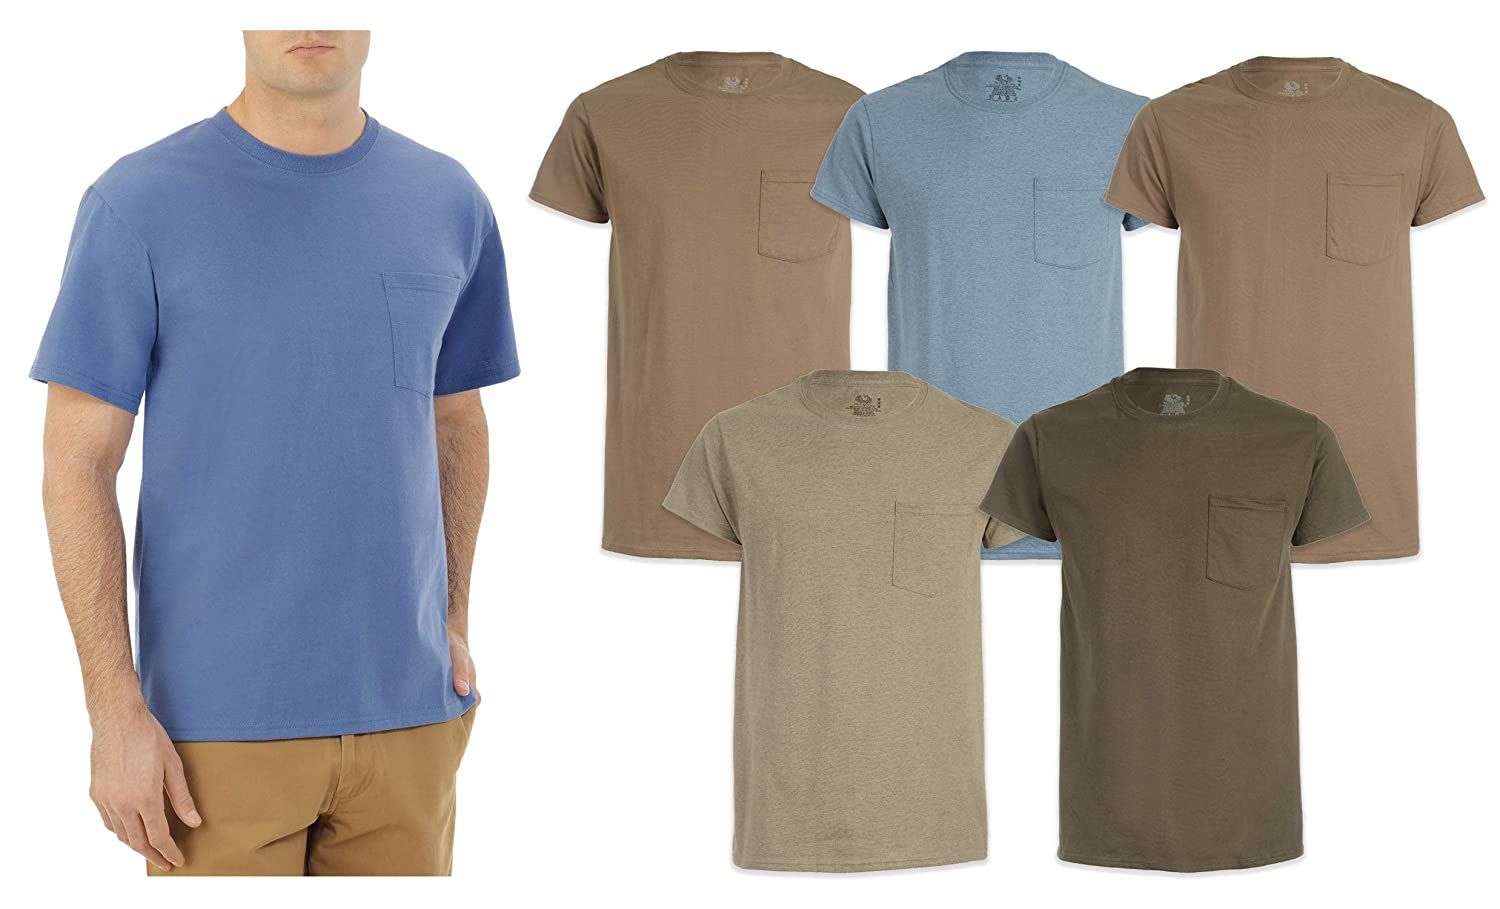 Fruit of the Loom Men's Pocket T-Shirts 5-Pack Assorted Colors. Sizes- M-XL